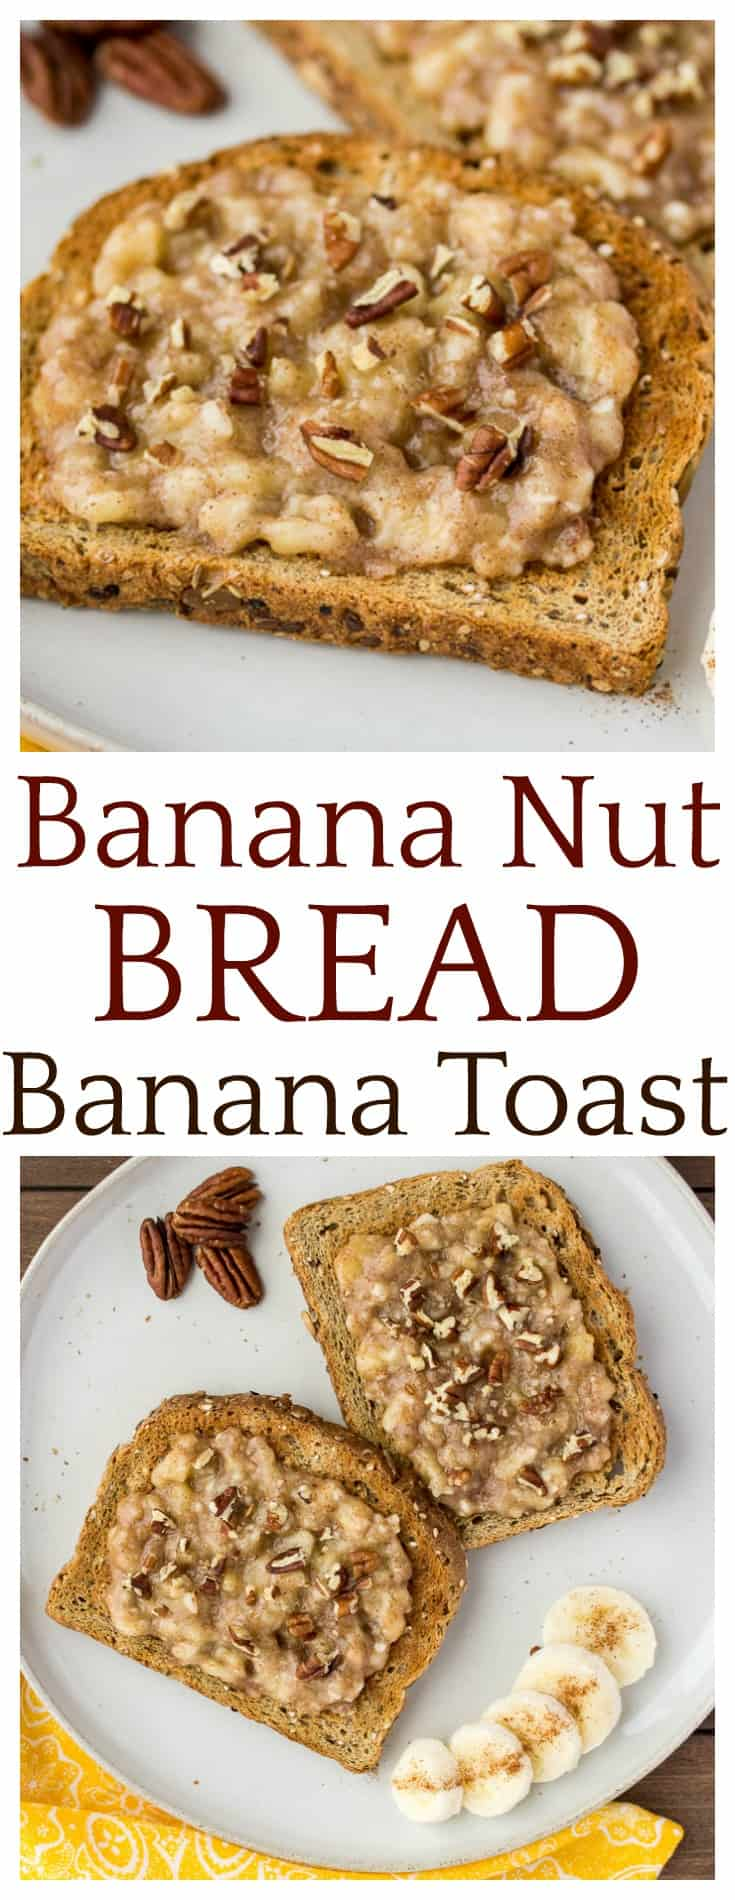 Banana Nut Bread Banana Toast combines all the flavors of this popular bread recipe into a delicious 5-minute breakfast! Who doesn't love a quick, delicious breakfast recipe? | #breakfast #banana #bananatoast #easyrecipes #dlbrecipes